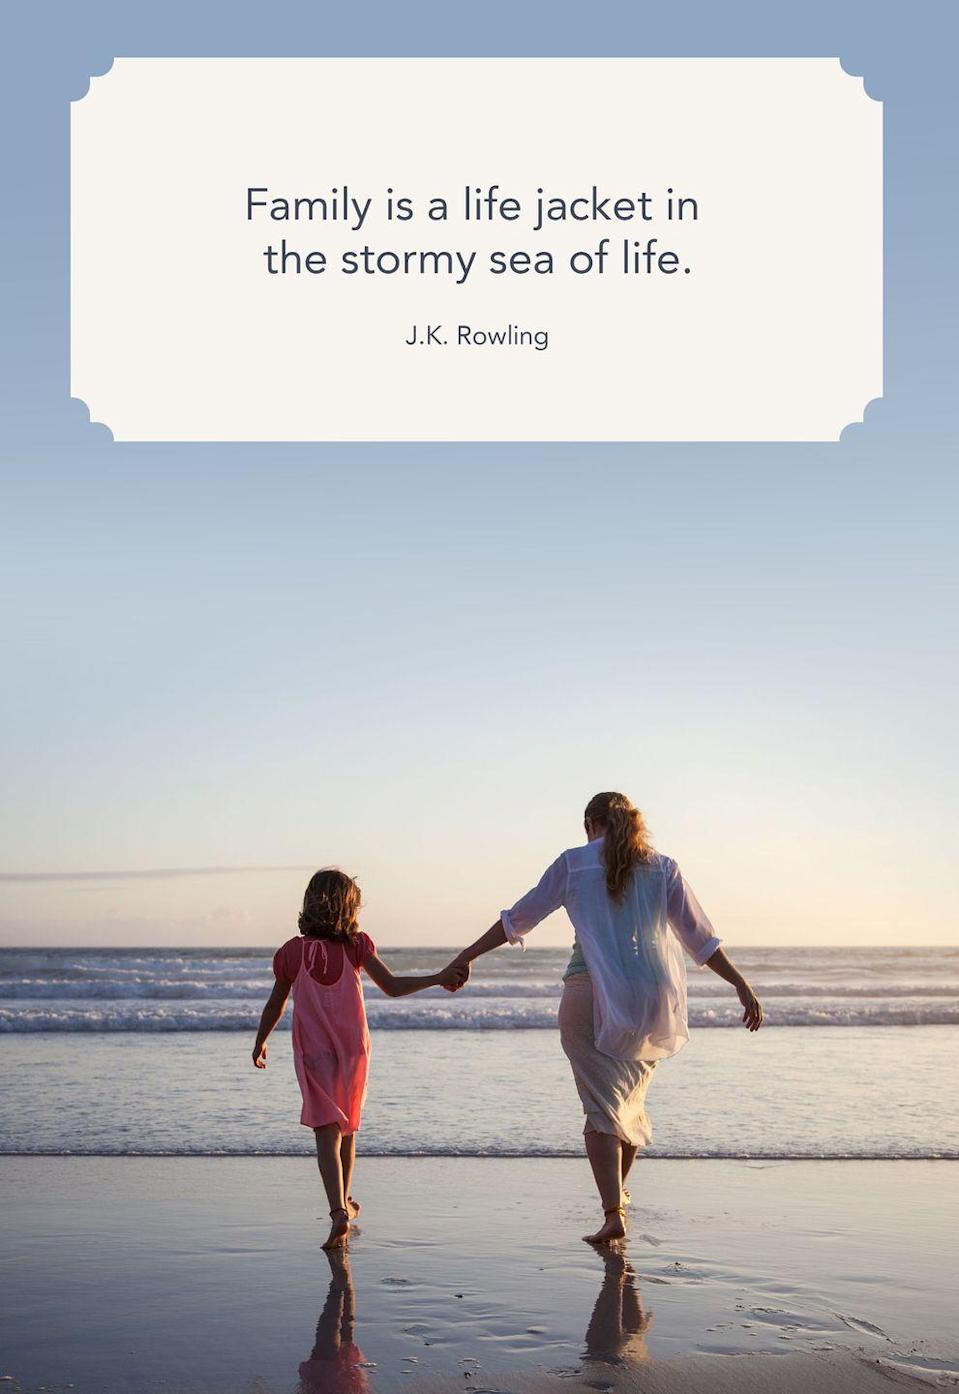 "<p>""Family is a life jacket in the stormy sea of life.""</p>"